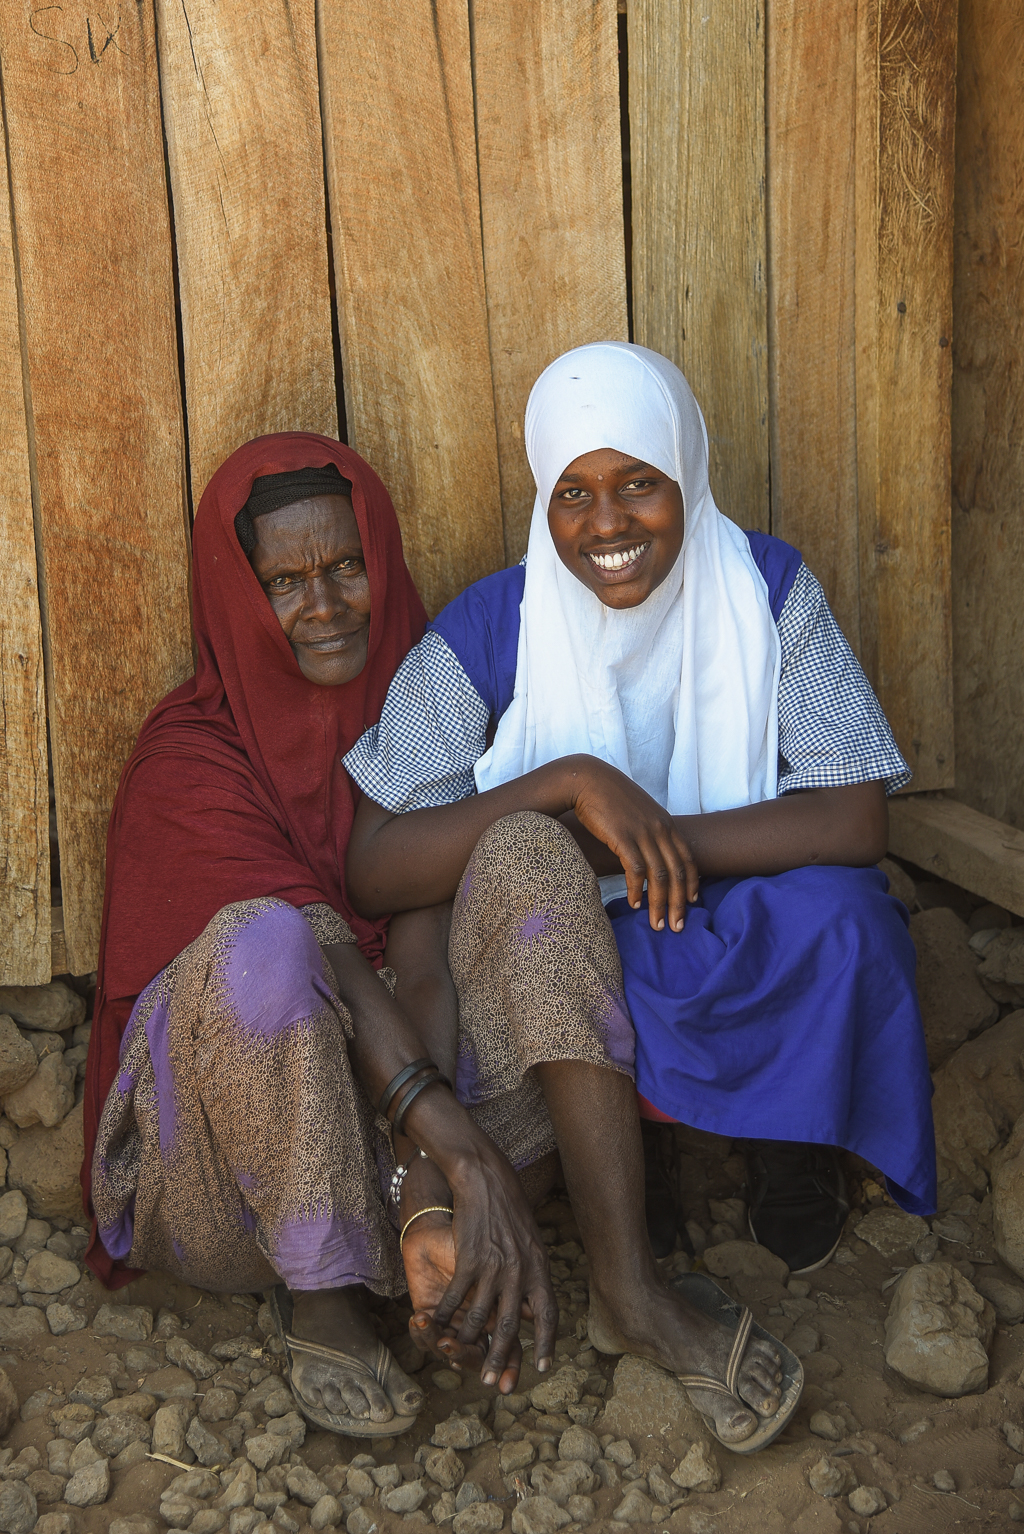 Fartusa Abdi and her mother